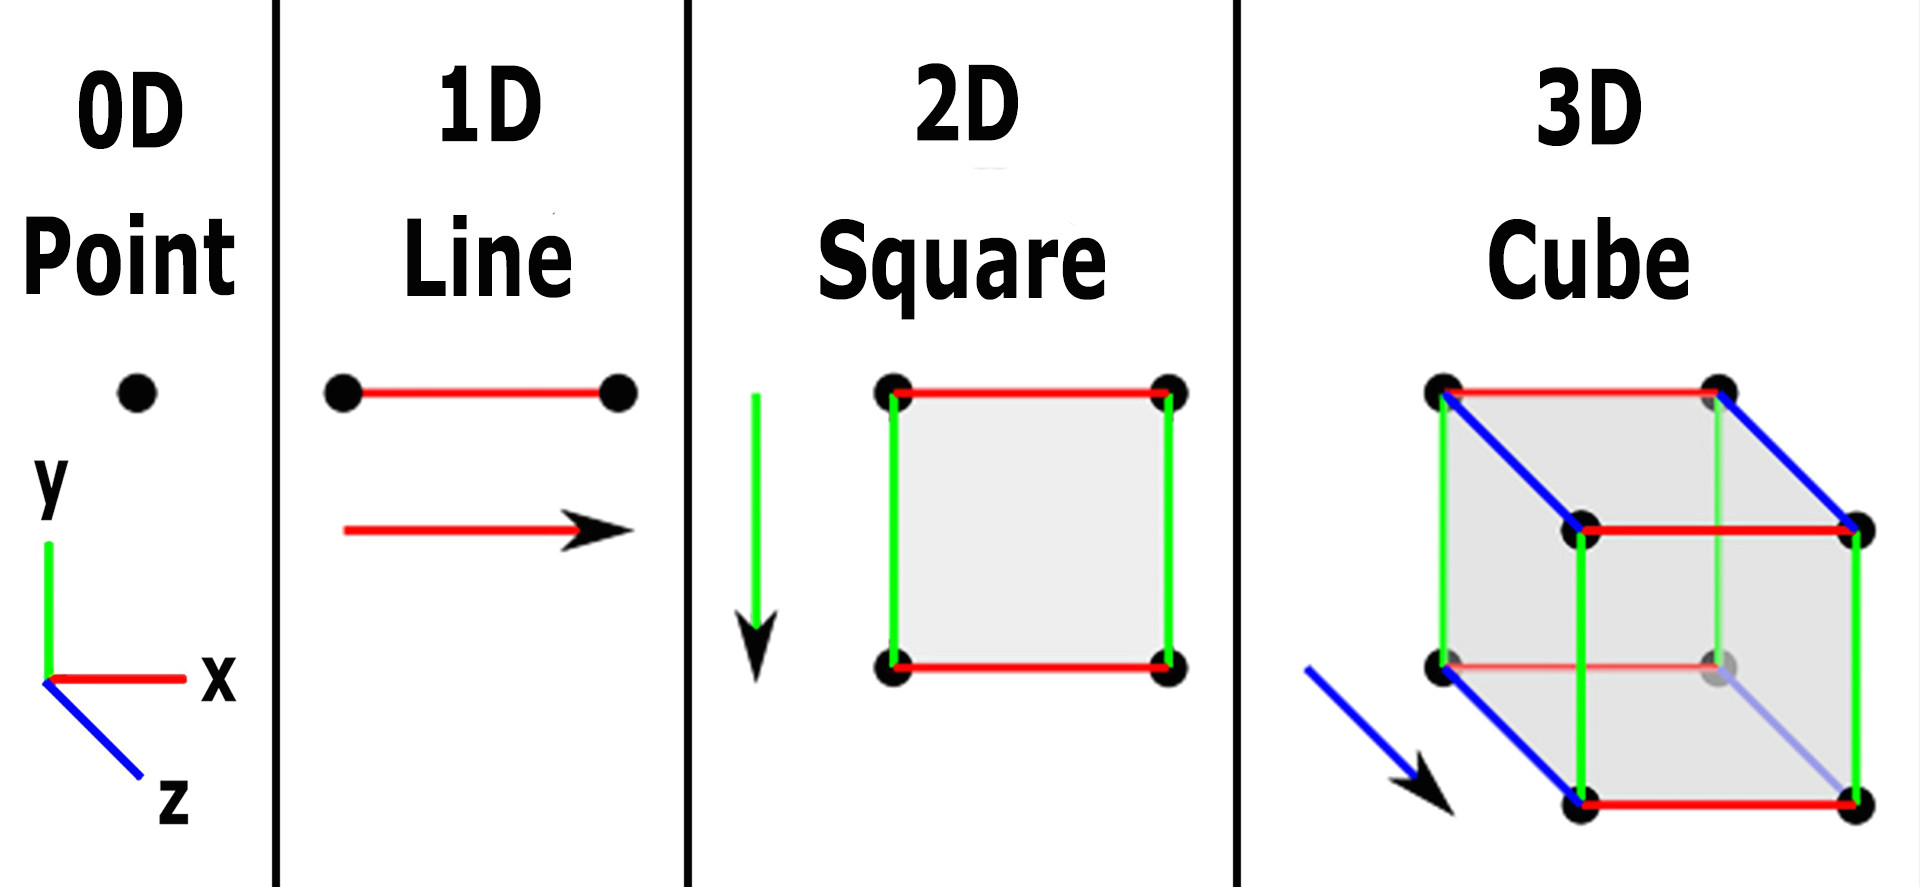 image showing the first three dimensions for the geometry of fourth dimension and the space 0d